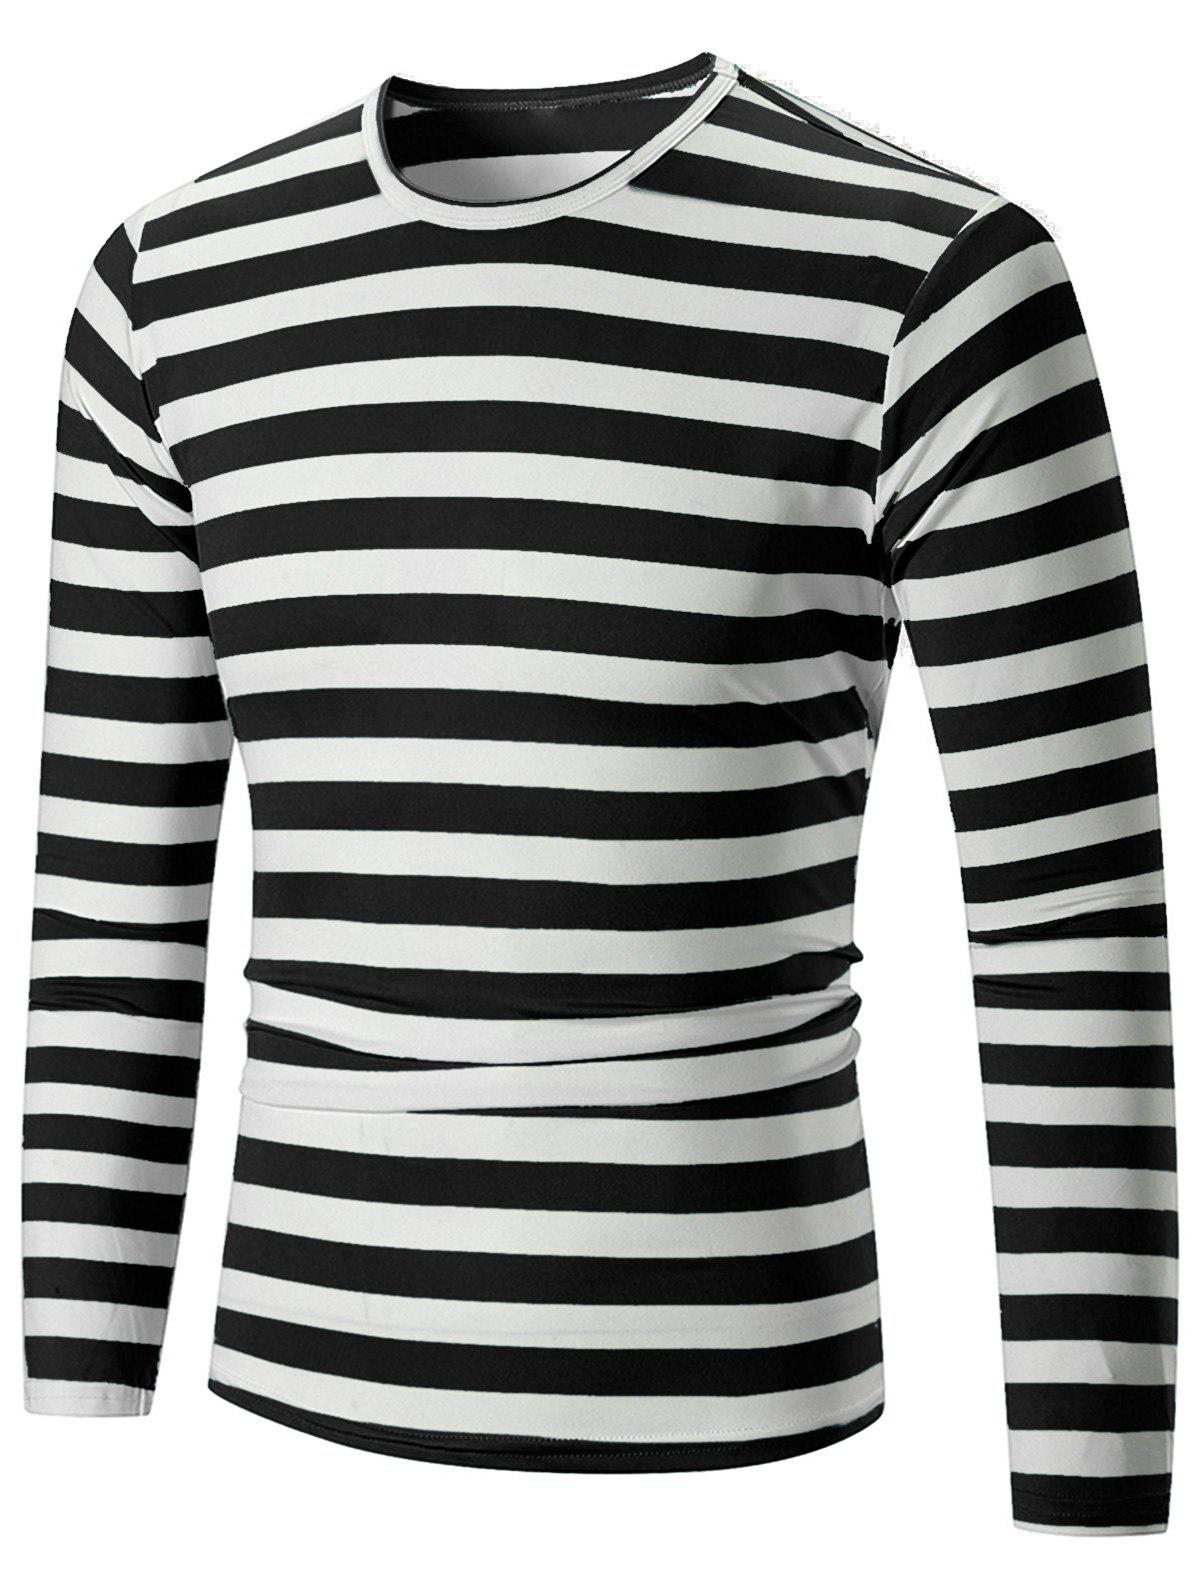 Crew Neck Striped Print T-shirt - BLACK XL